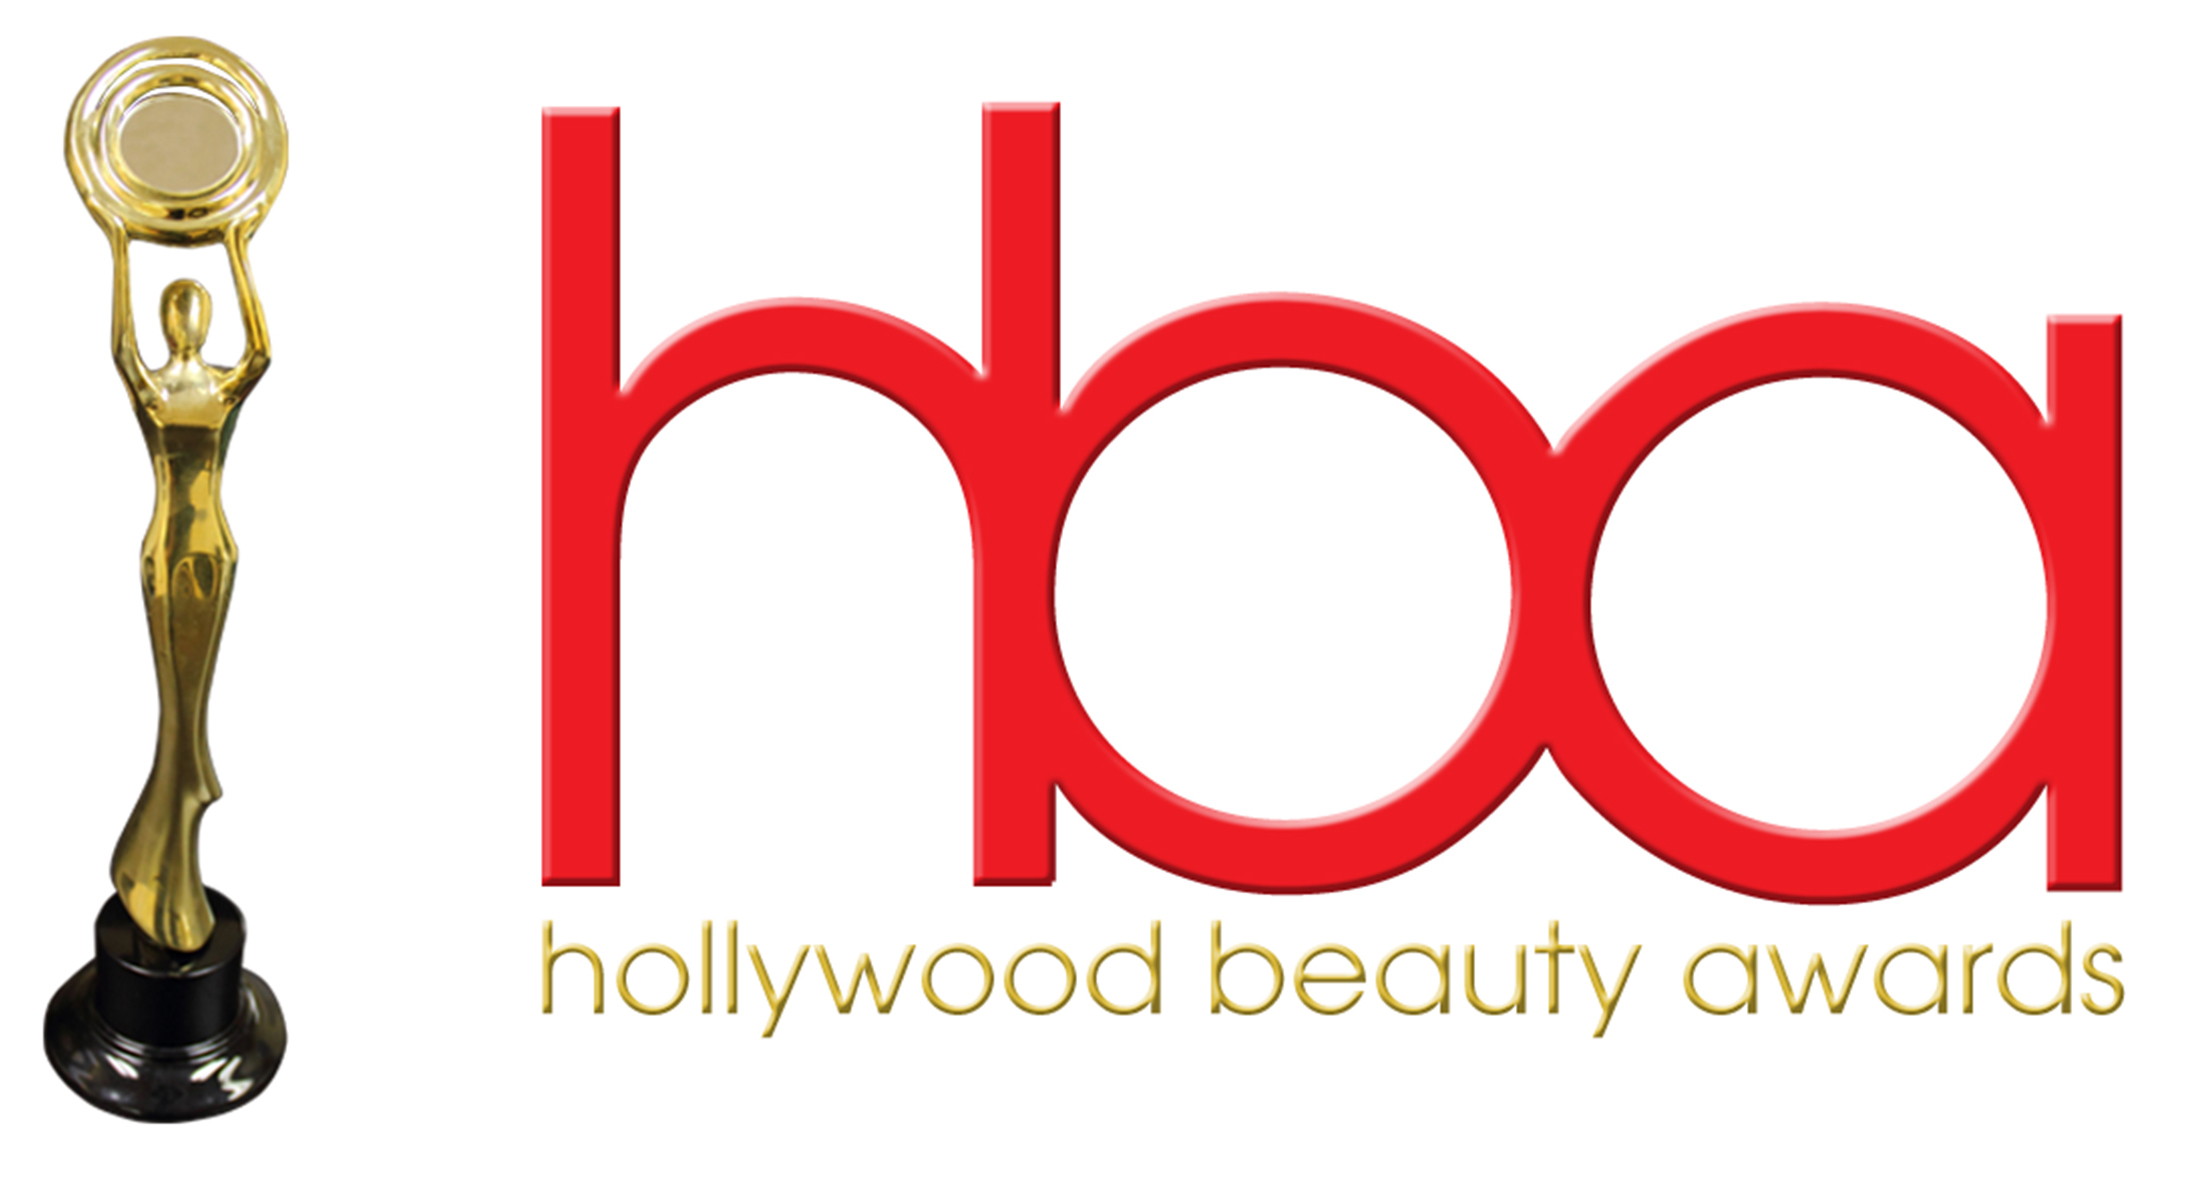 2020 Hollywood beauty awards honorees and nominees